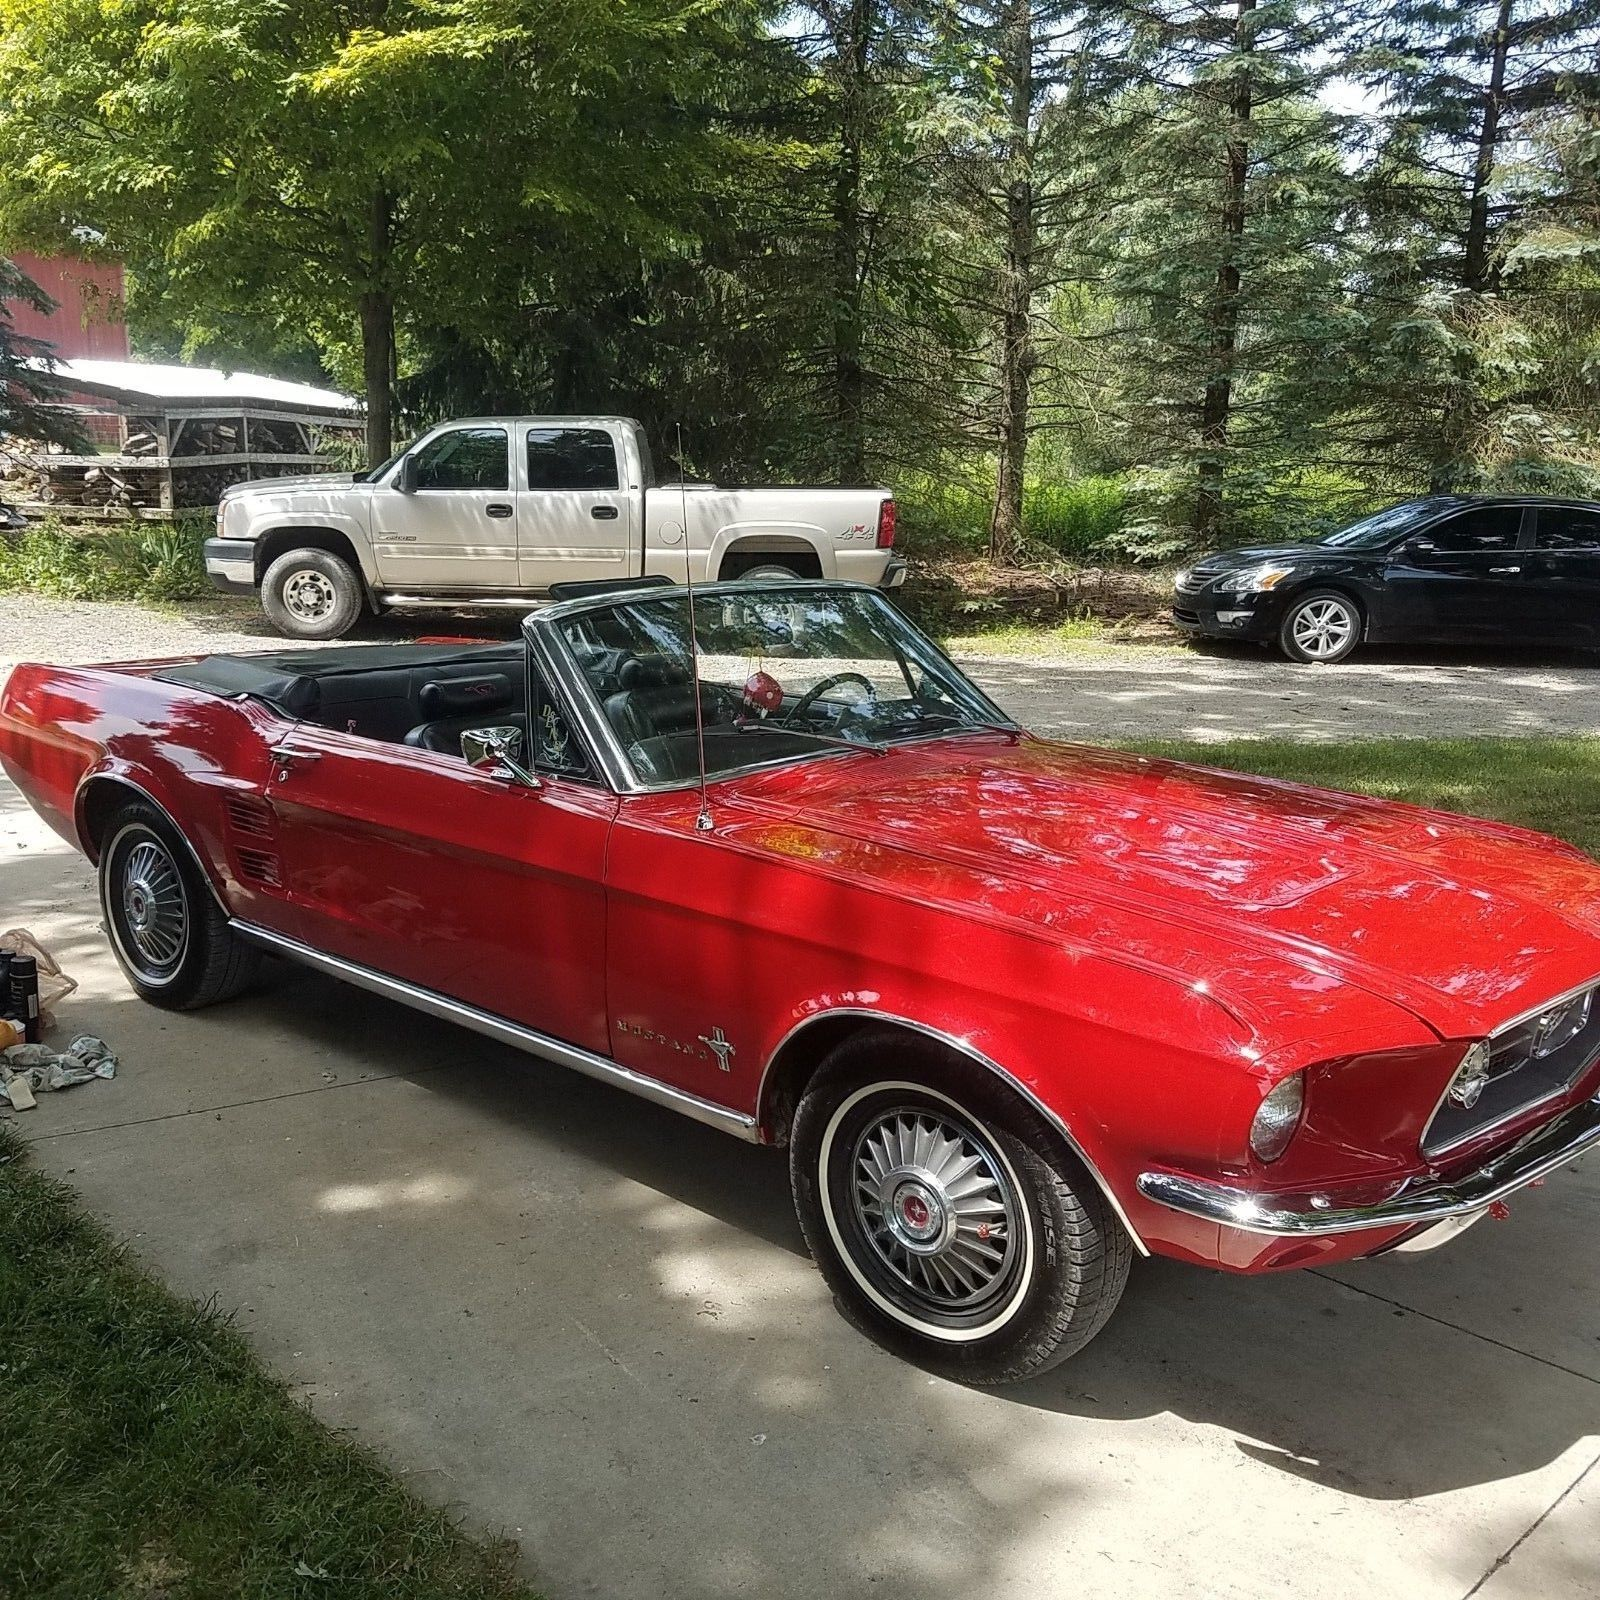 1967 Ford Mustang 1967 MUSTANG CONVERTIBLE With 302 V8